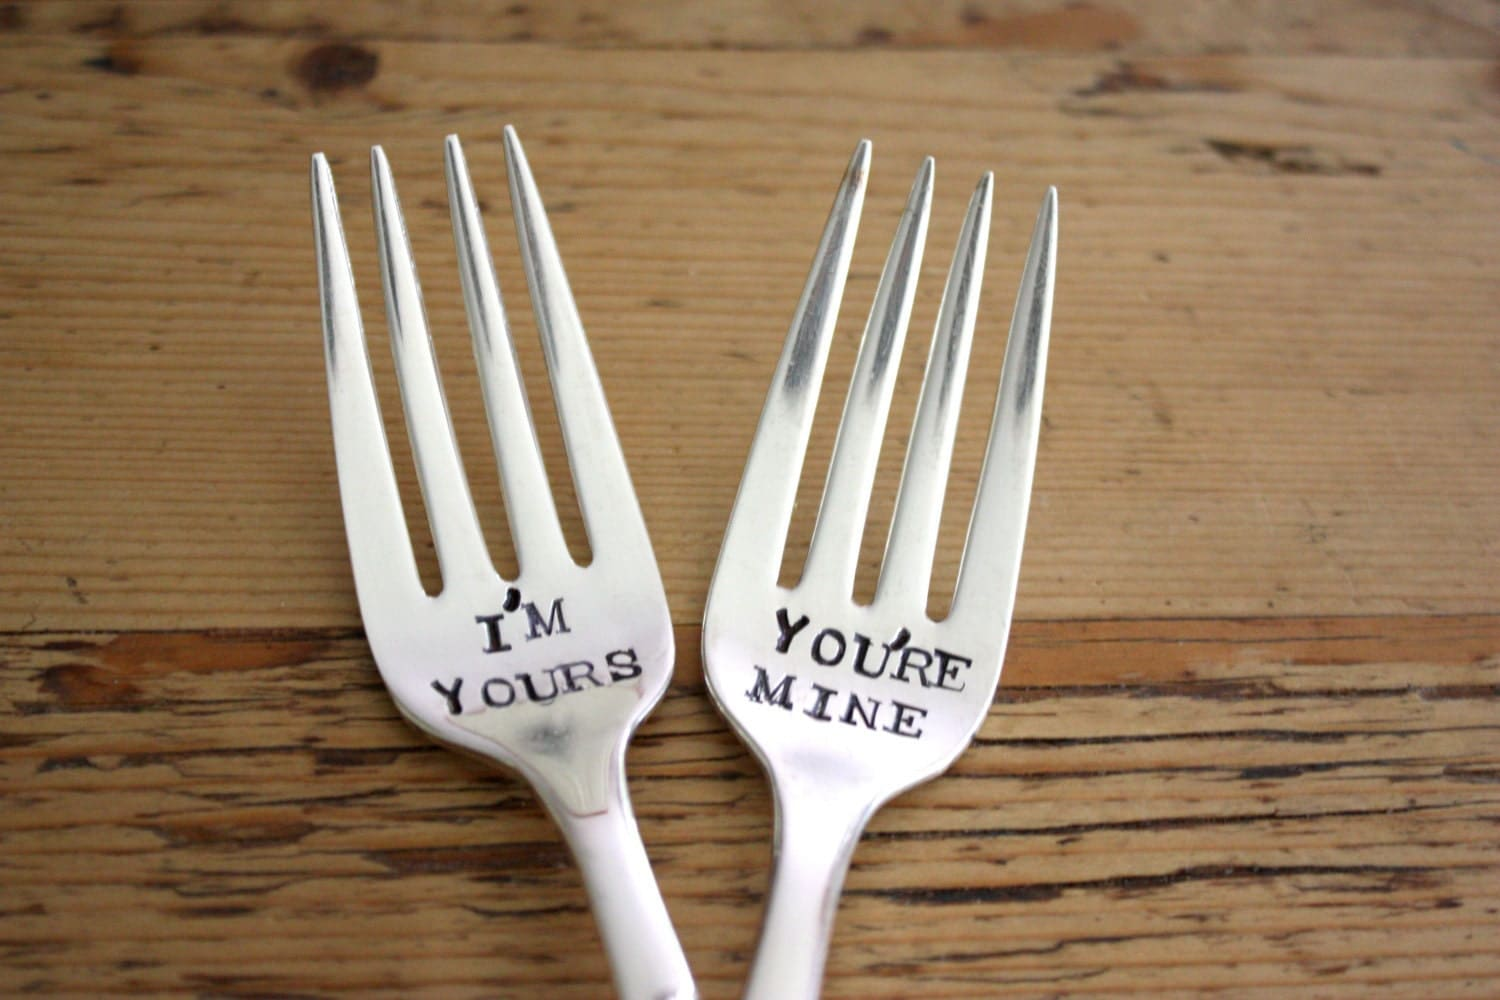 I'm Yours and You're Mine - Wedding Cake Fork Set  - Hand Stamped - Vintage Wedding